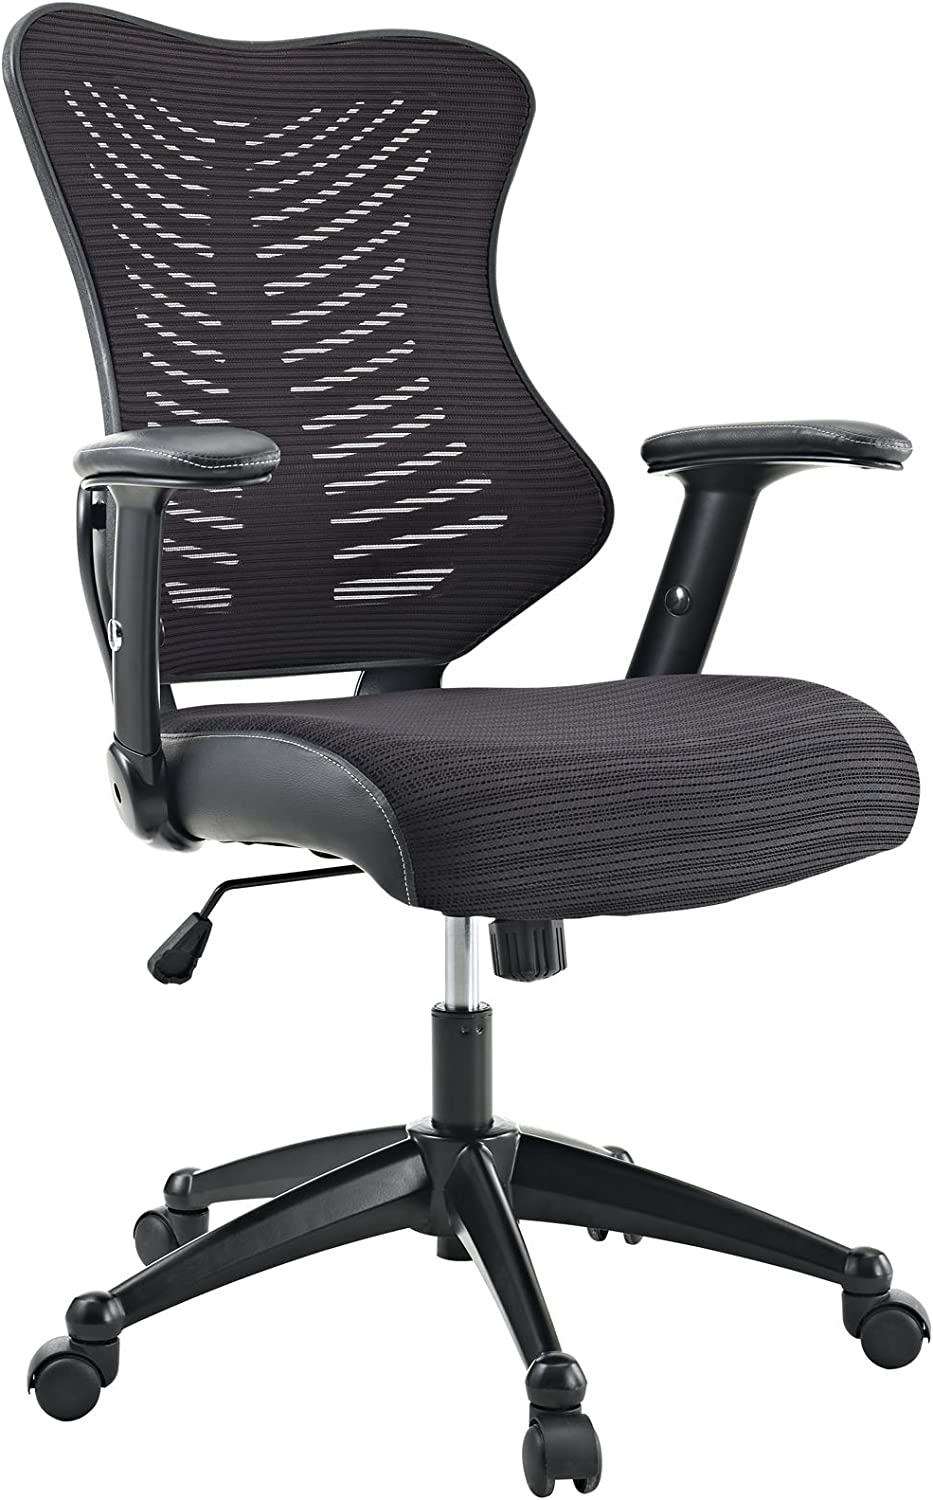 Modway Clutch Ergonomic Mesh Computer Desk Office Chair in Black